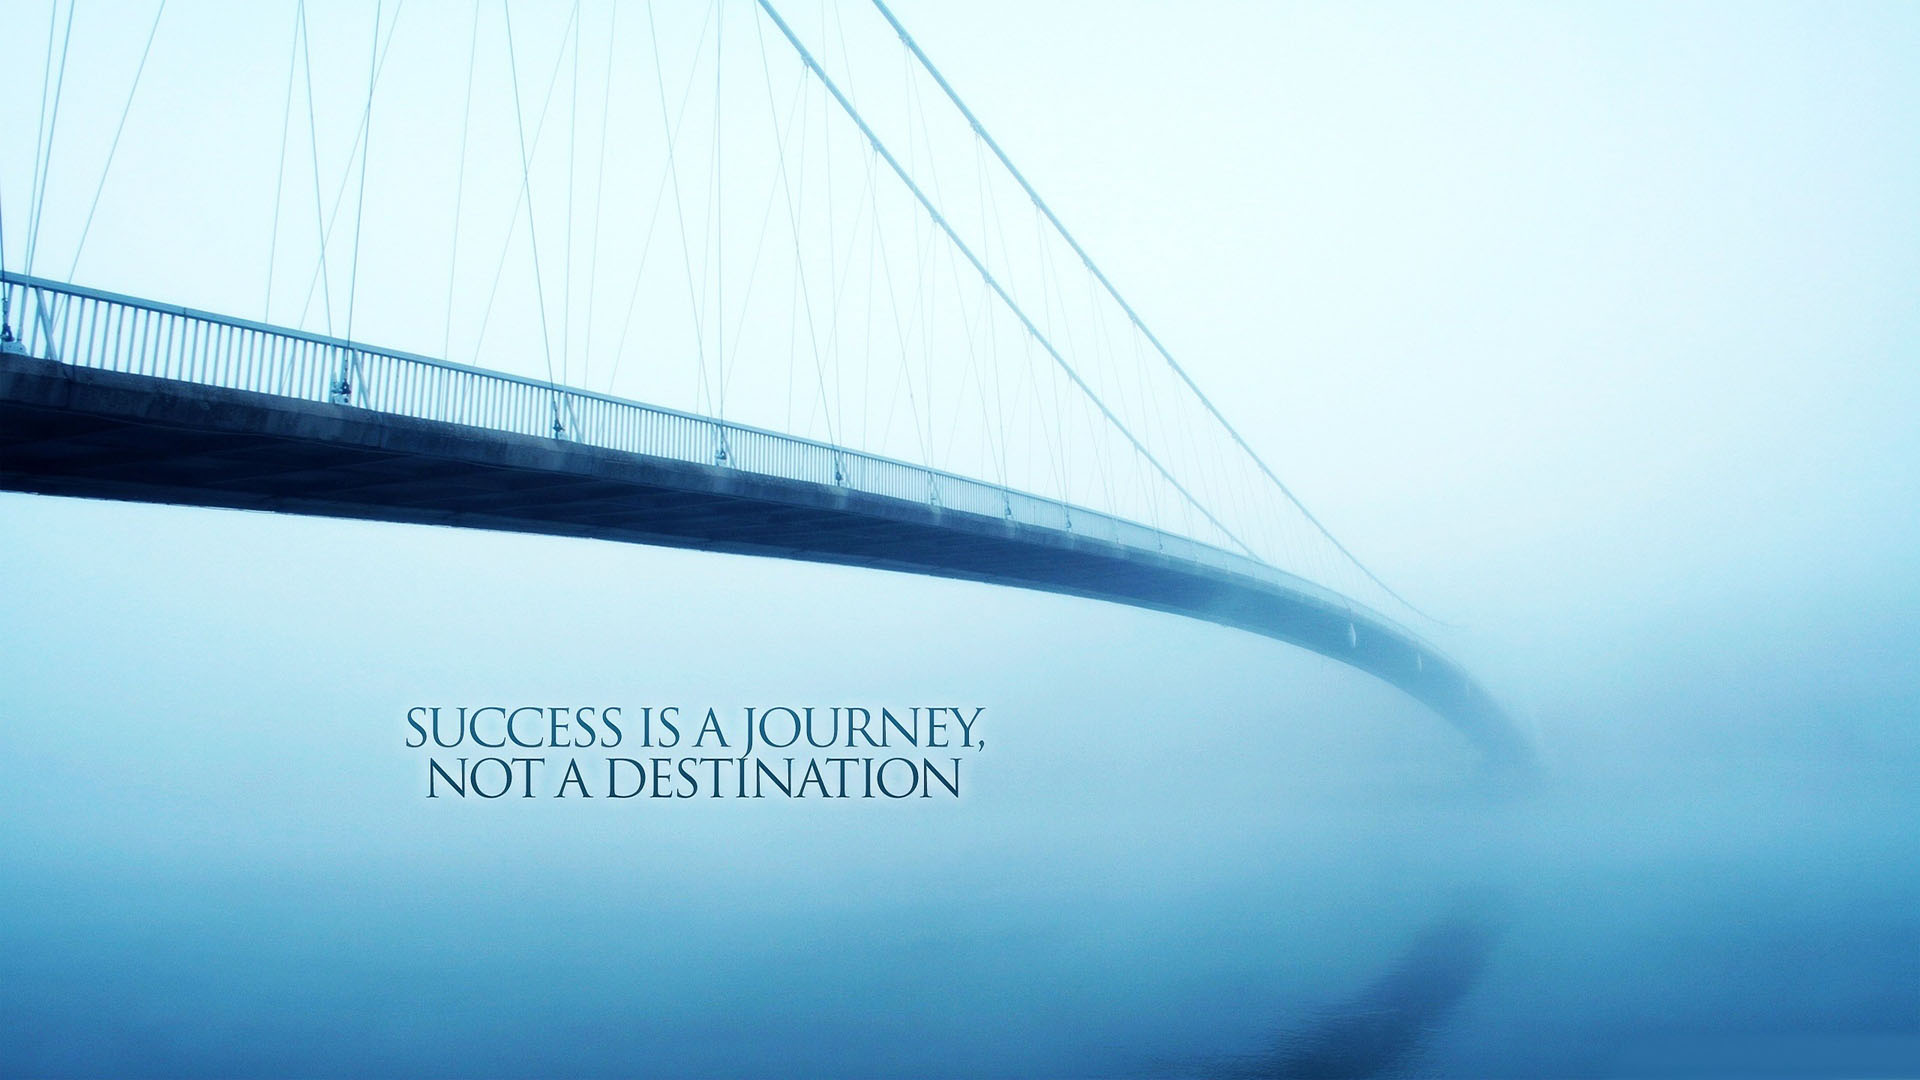 success is a journey